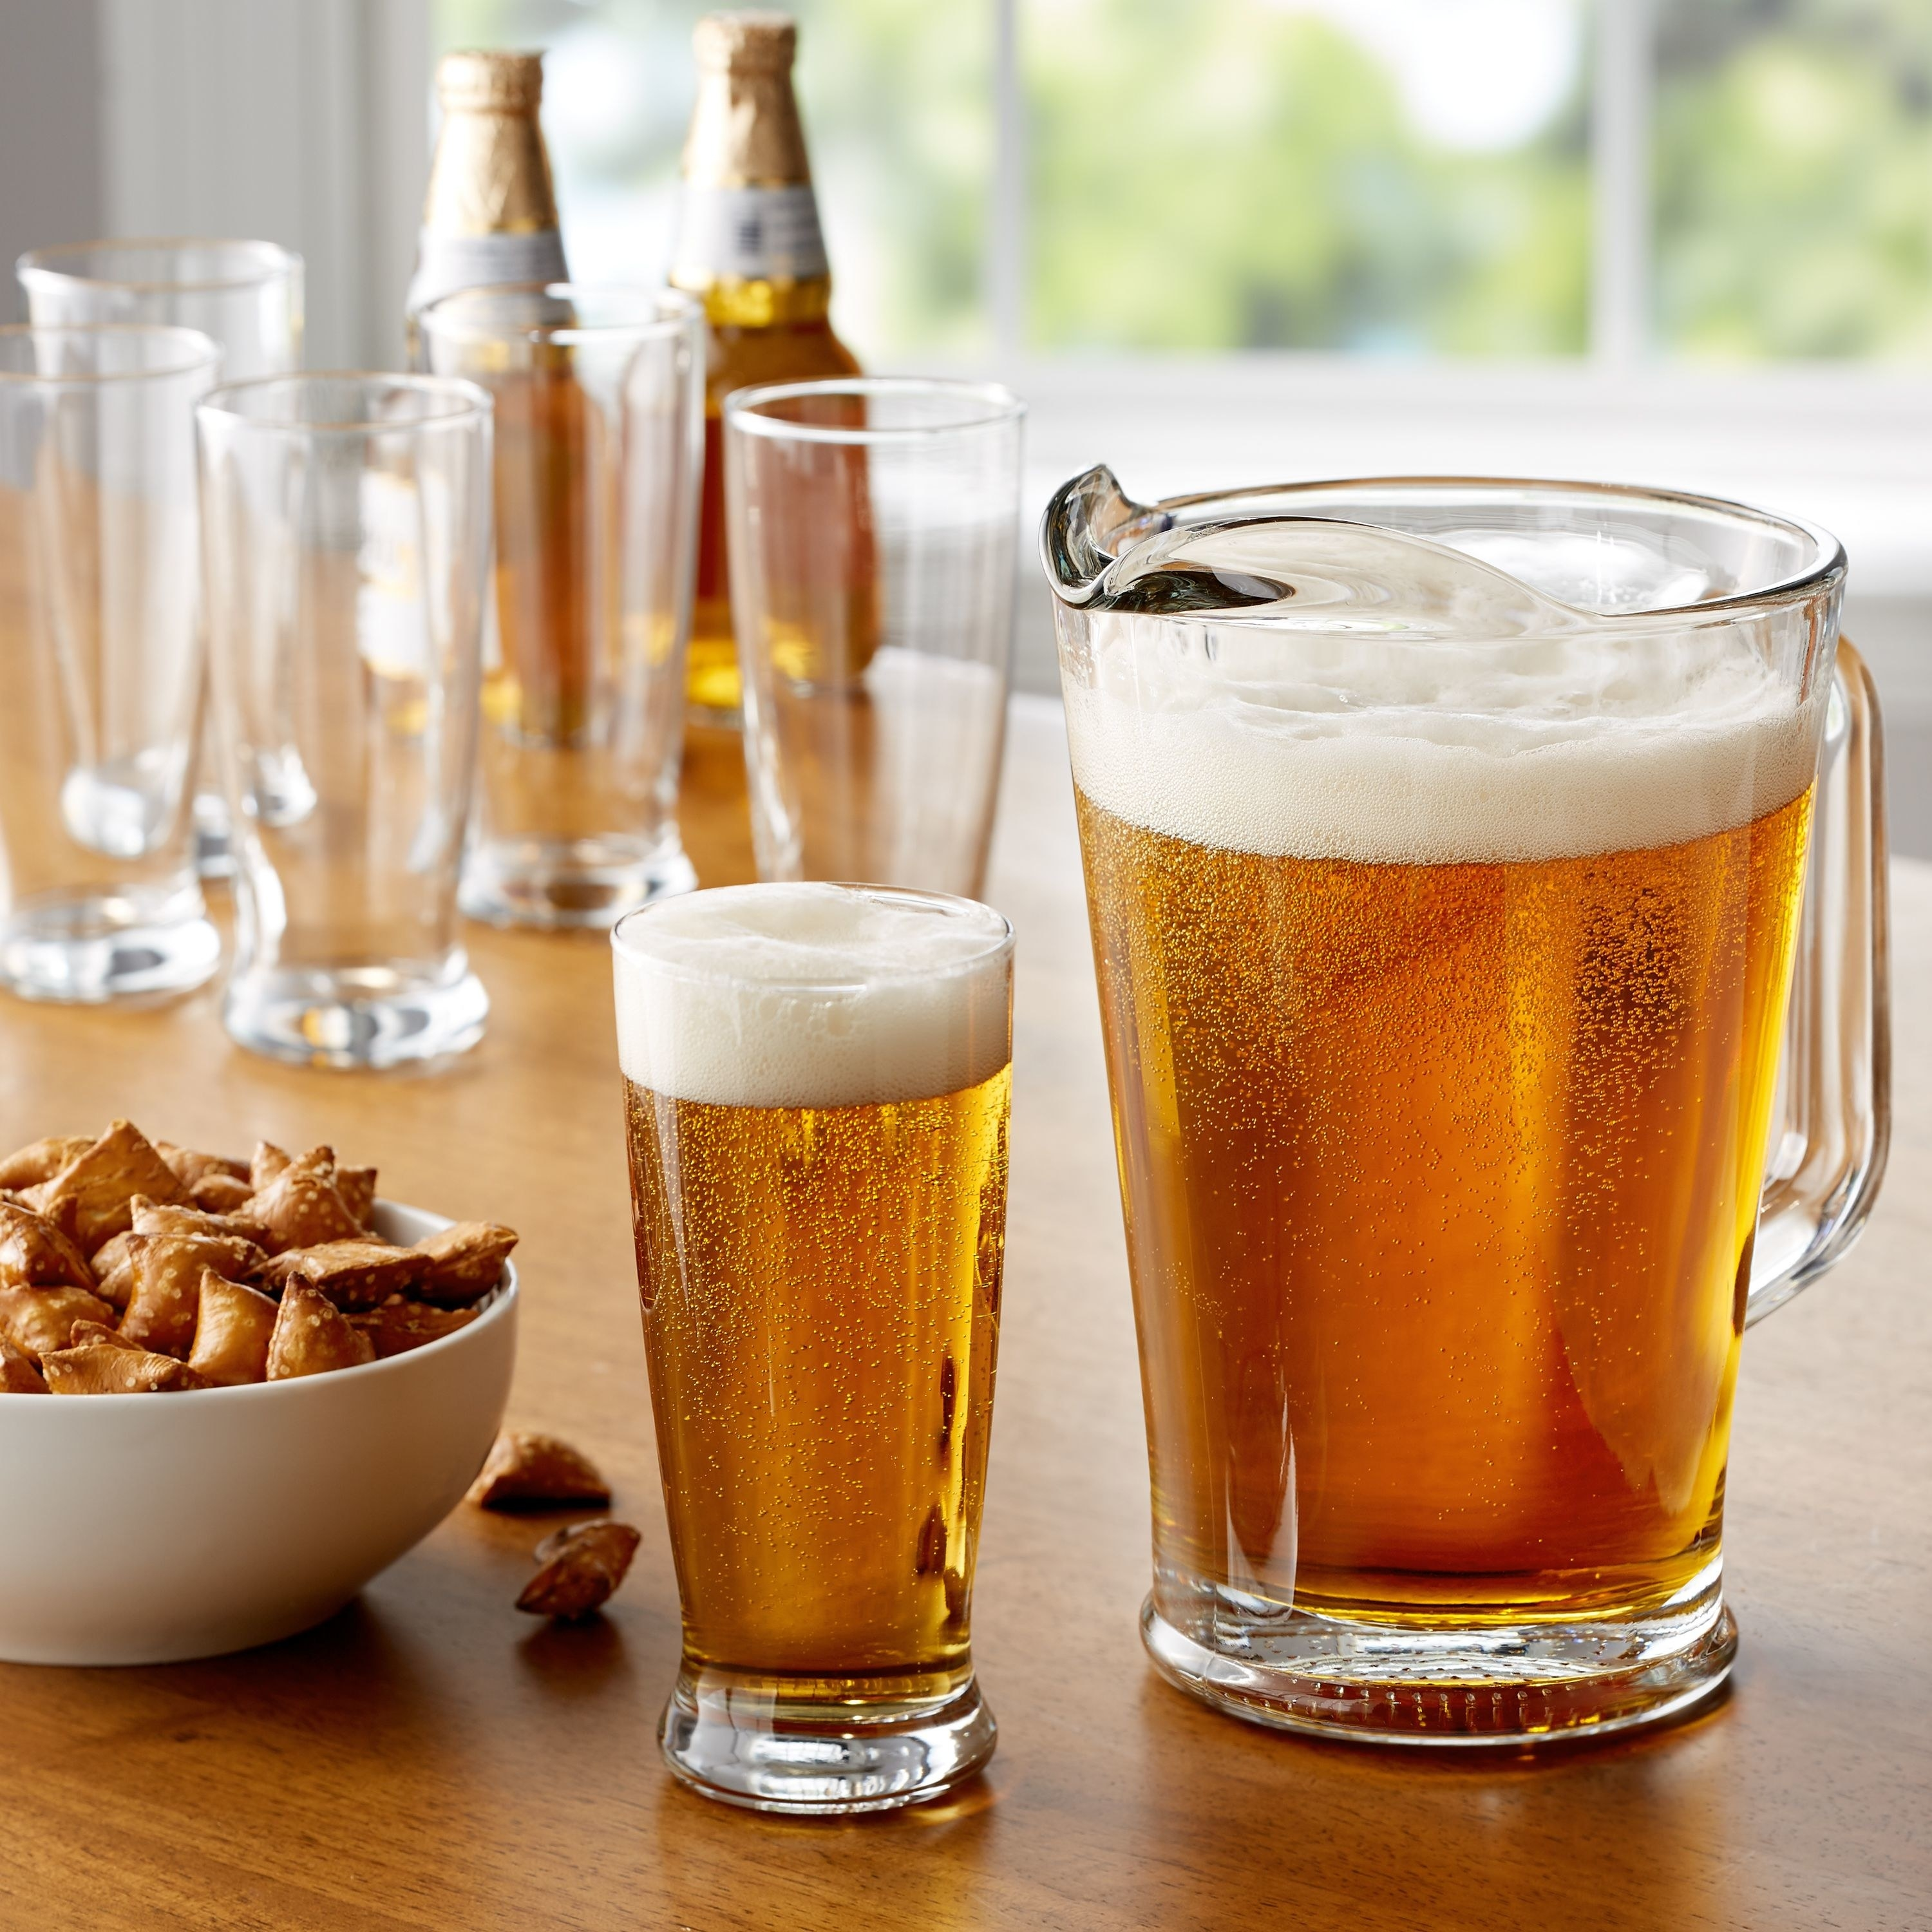 big pitcher and pint glasses with beer in them on a wood table